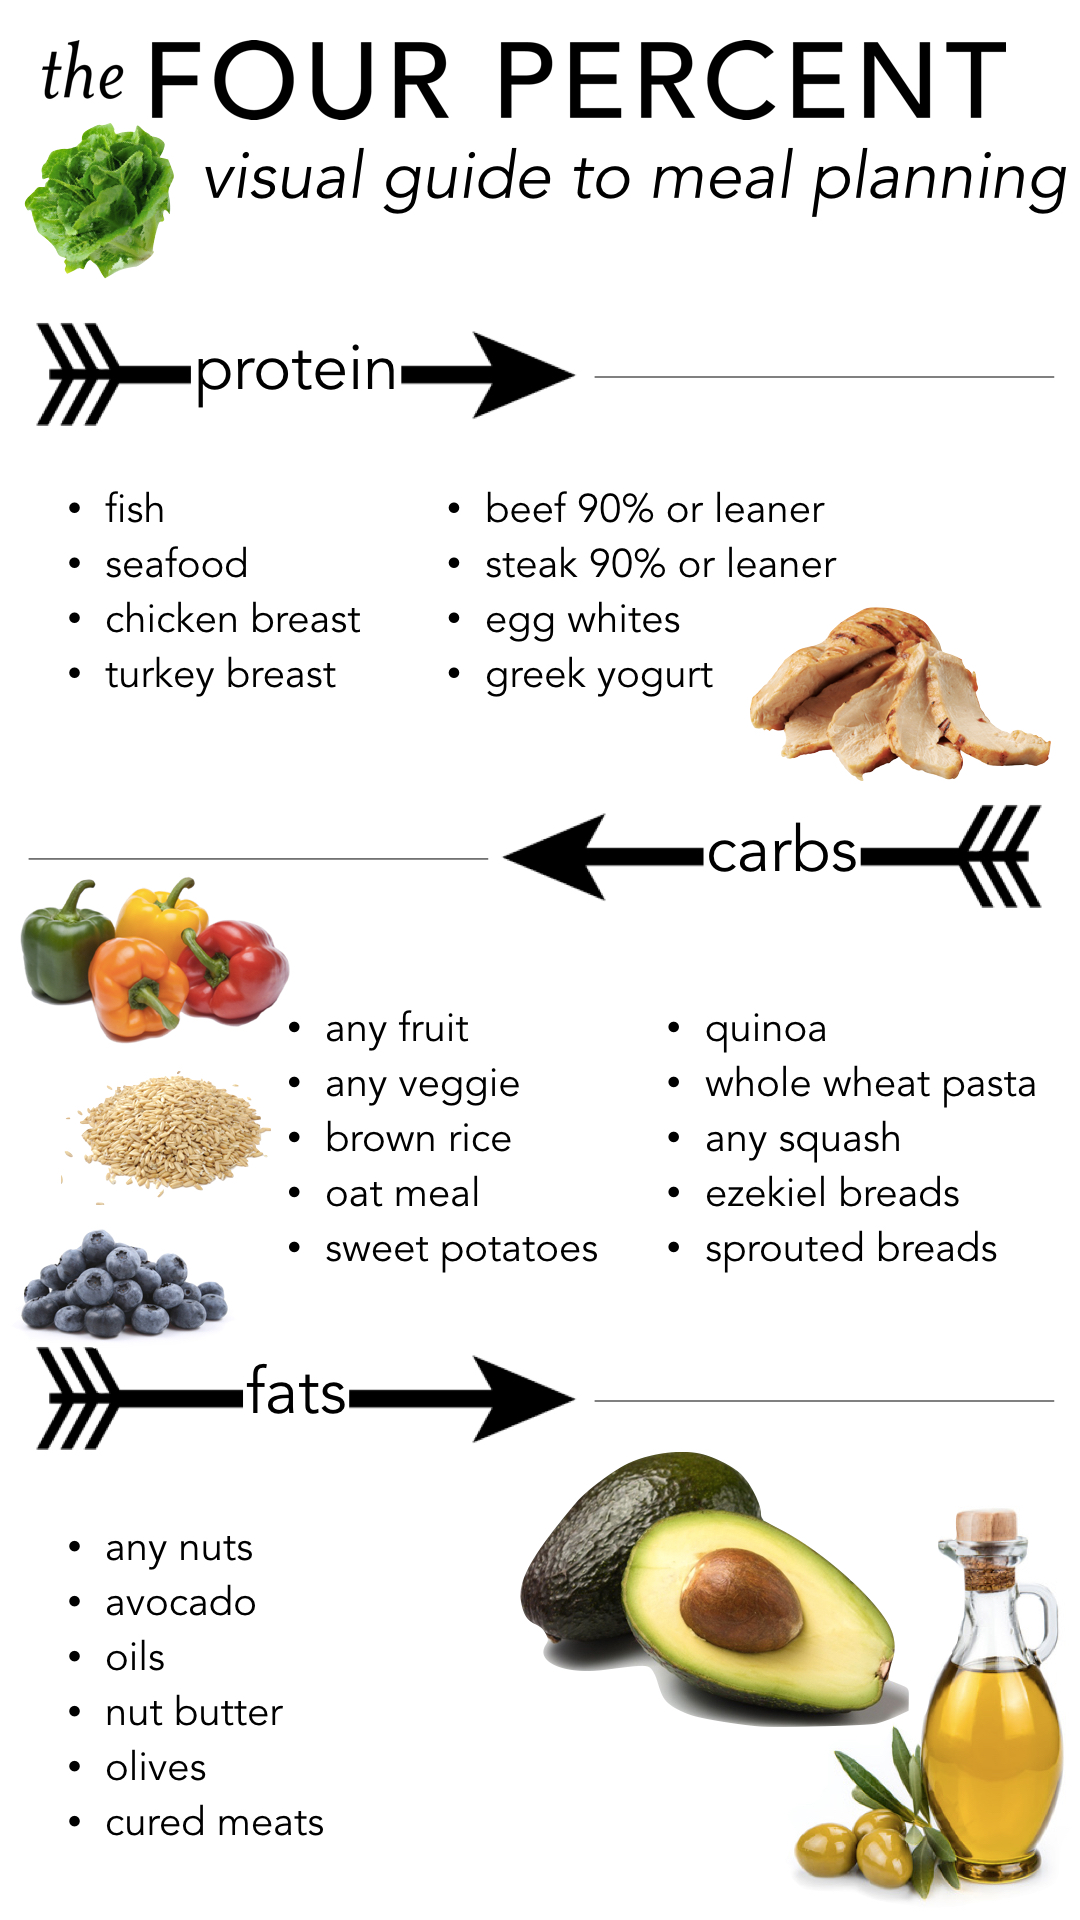 visual guide to meal planning